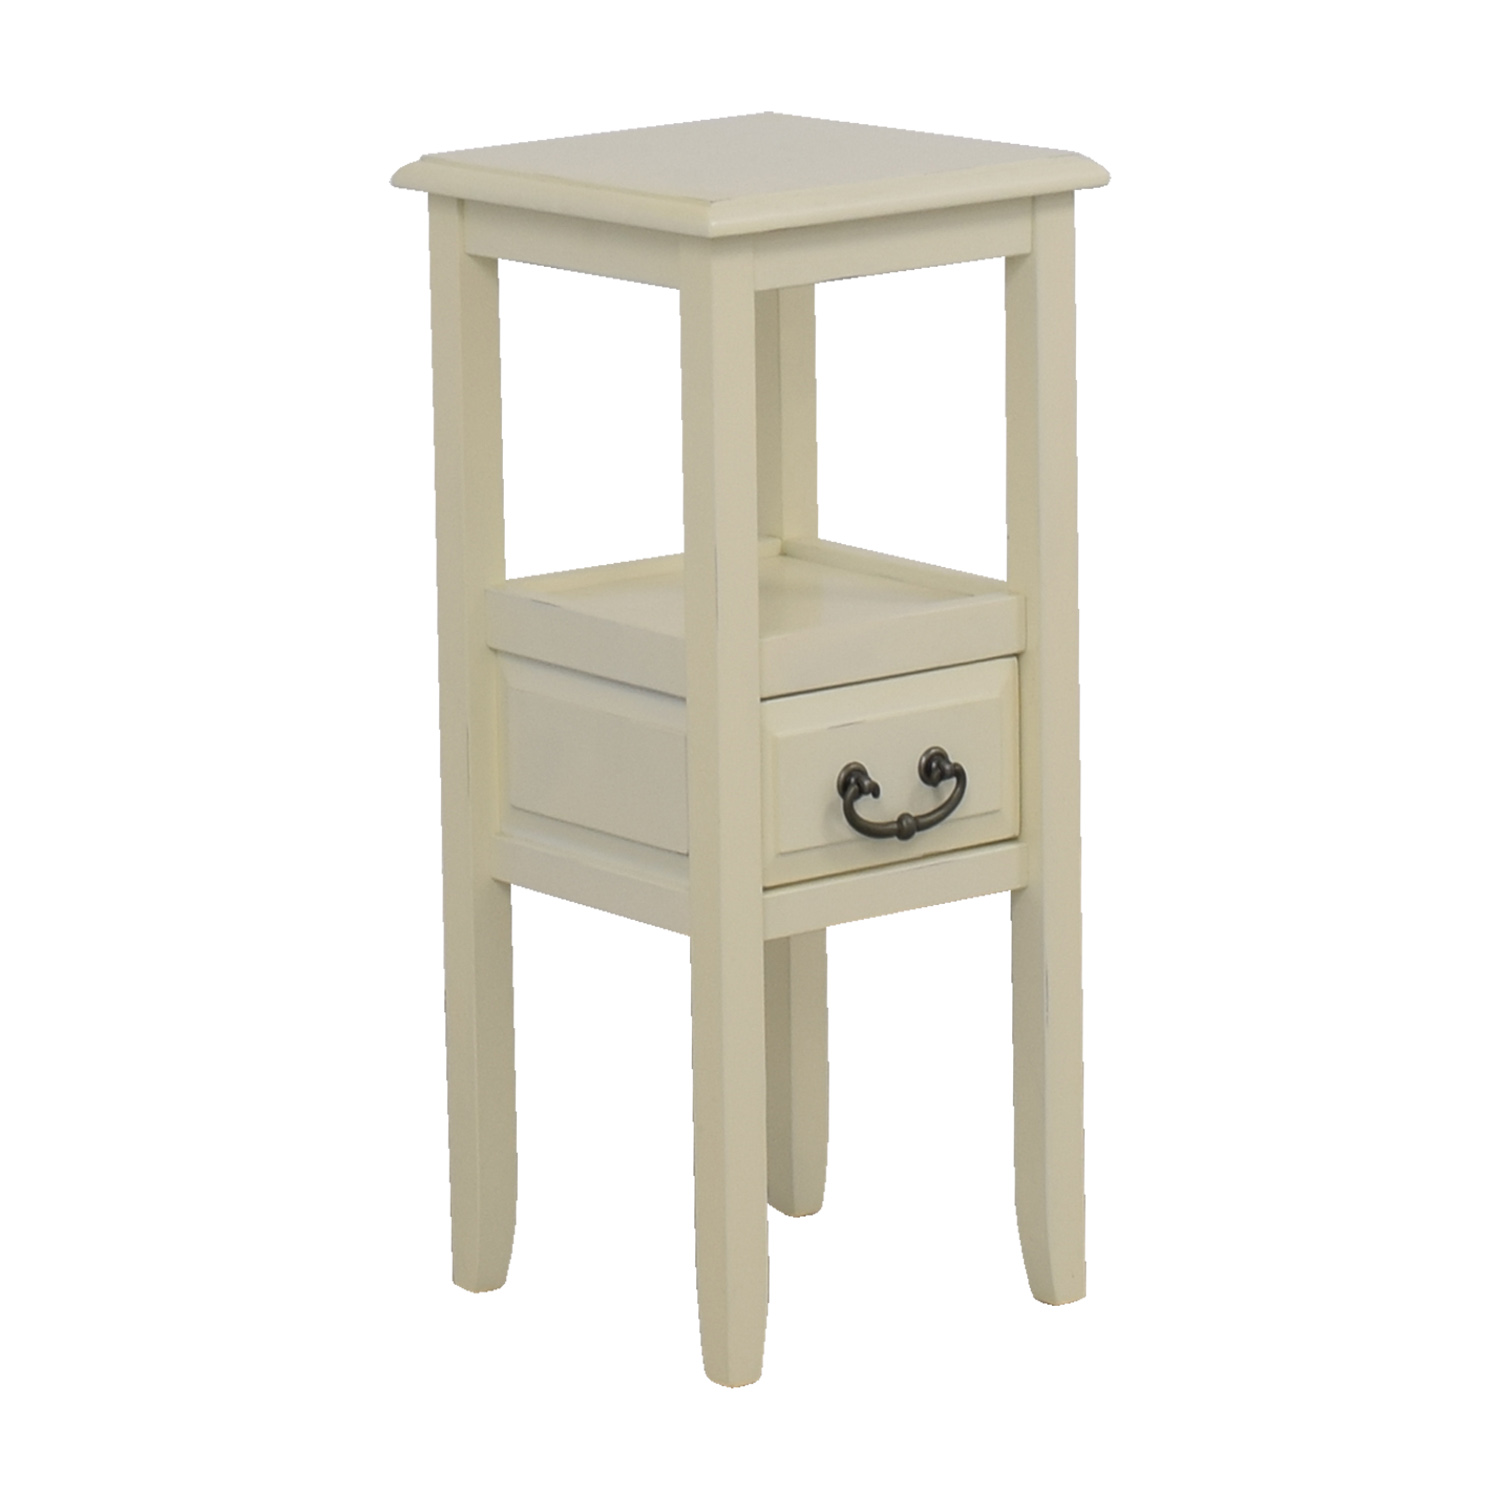 86 Off Pier 1 Pier 1 Imports Off White Side Table Tables